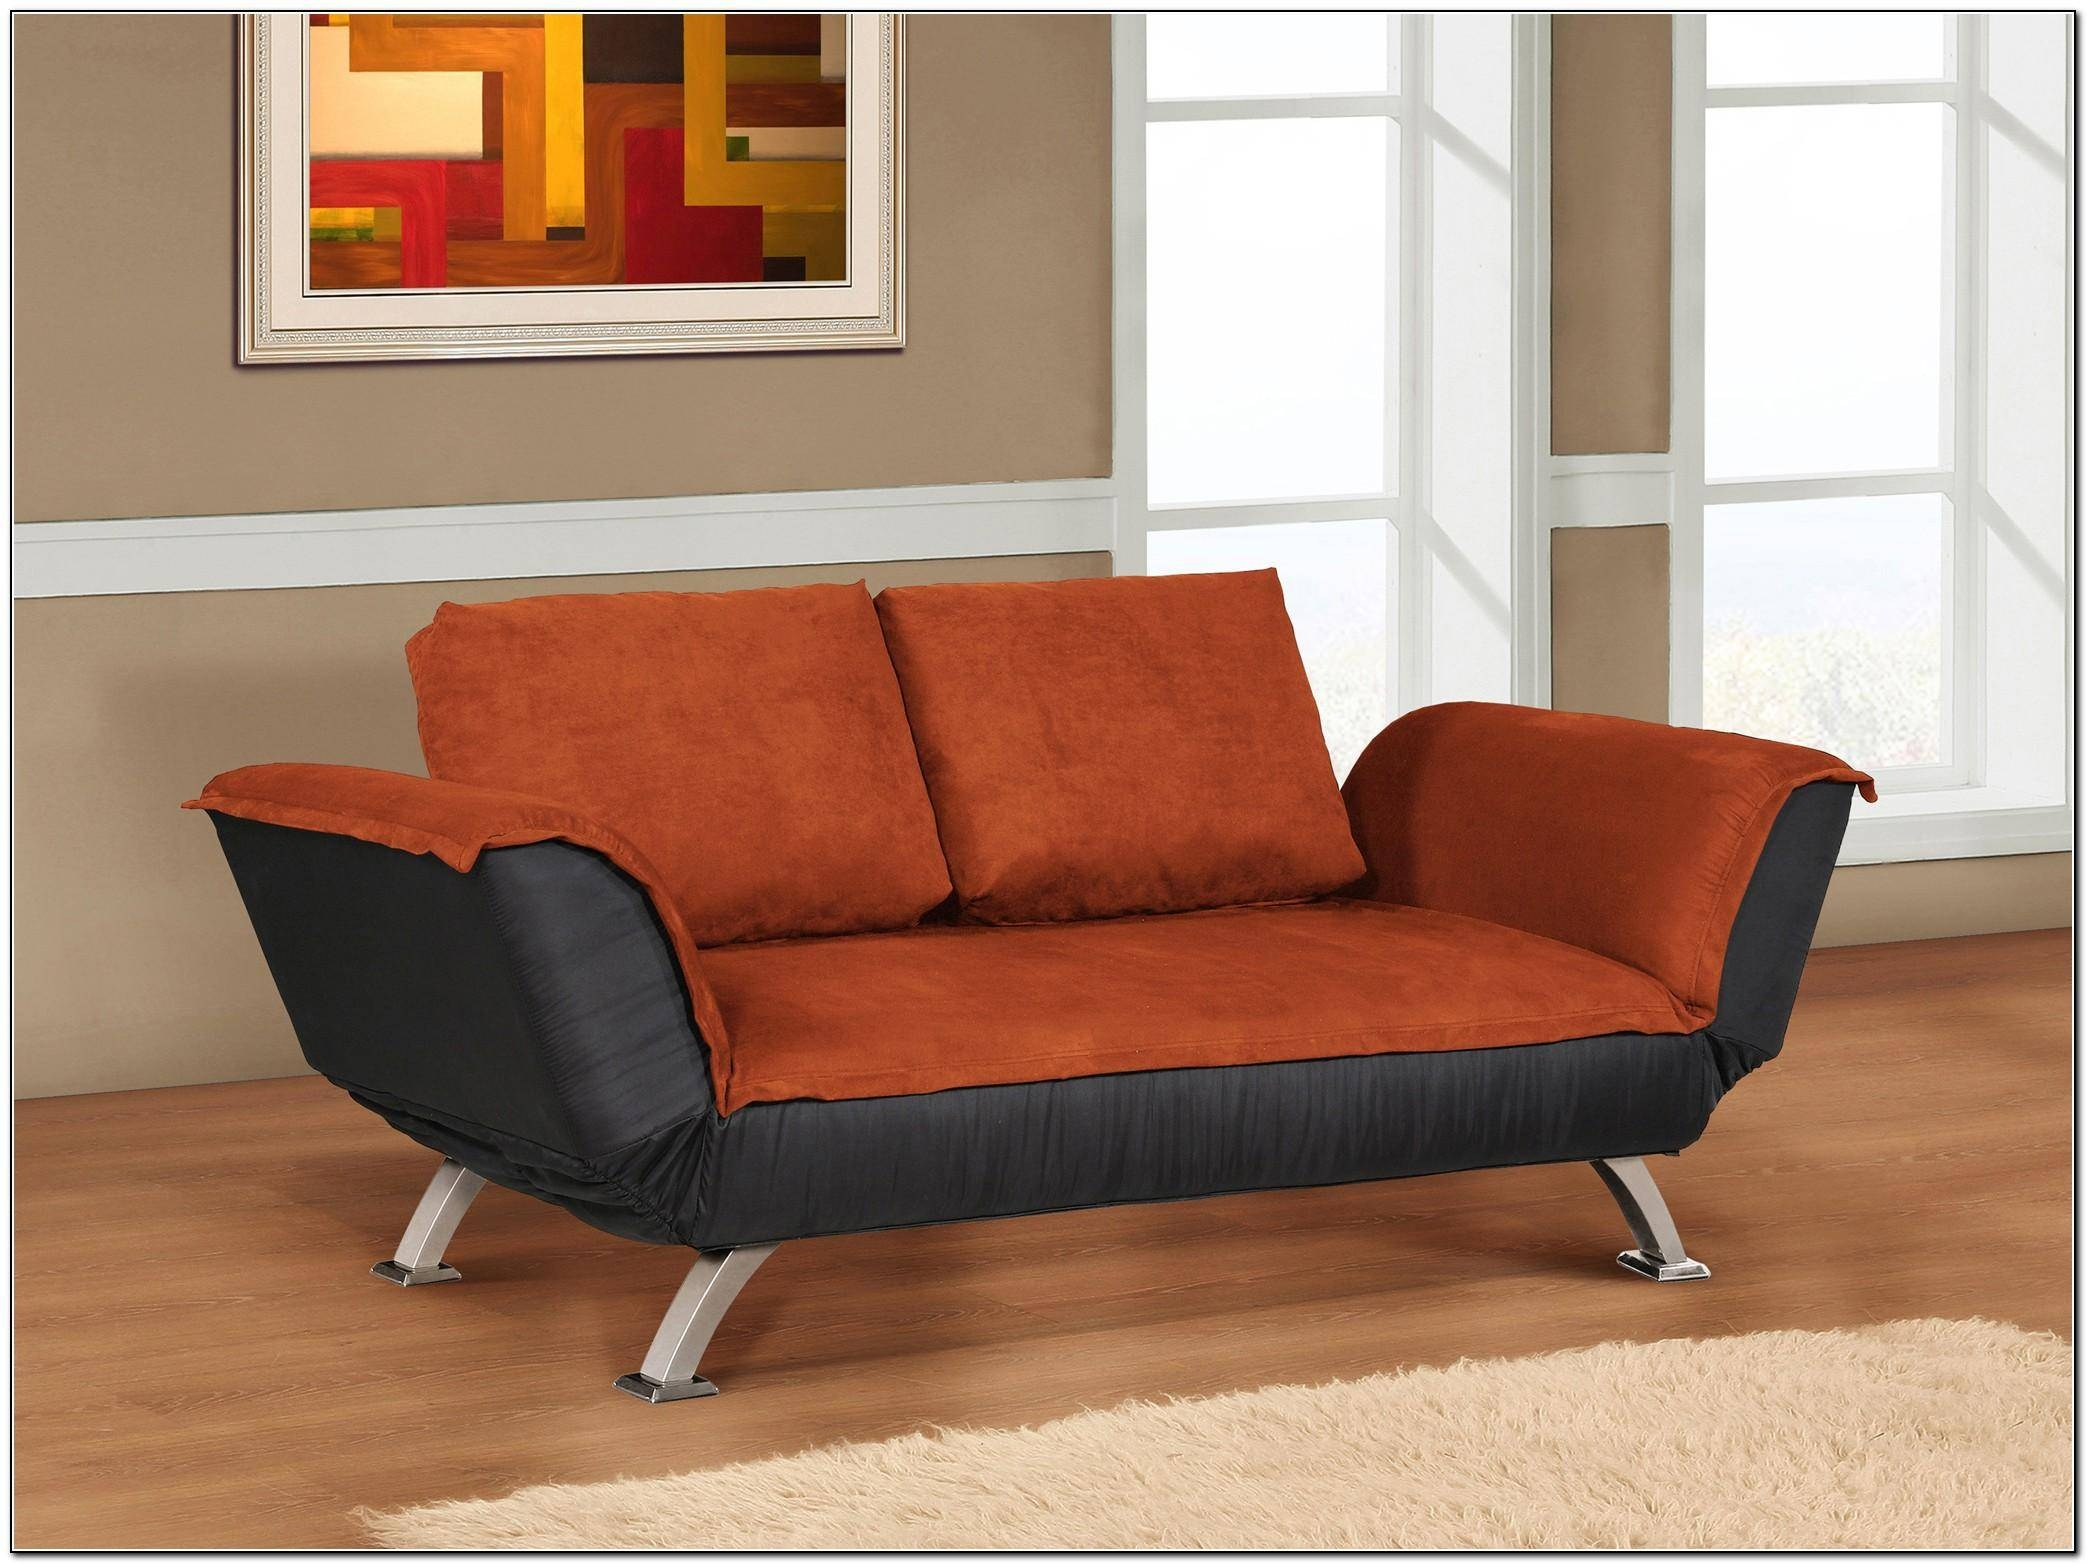 Unique Castro Convertible Sofa Bed 57 For Your Sofas And Couches pertaining to Castro Convertible Couches (Image 13 of 15)